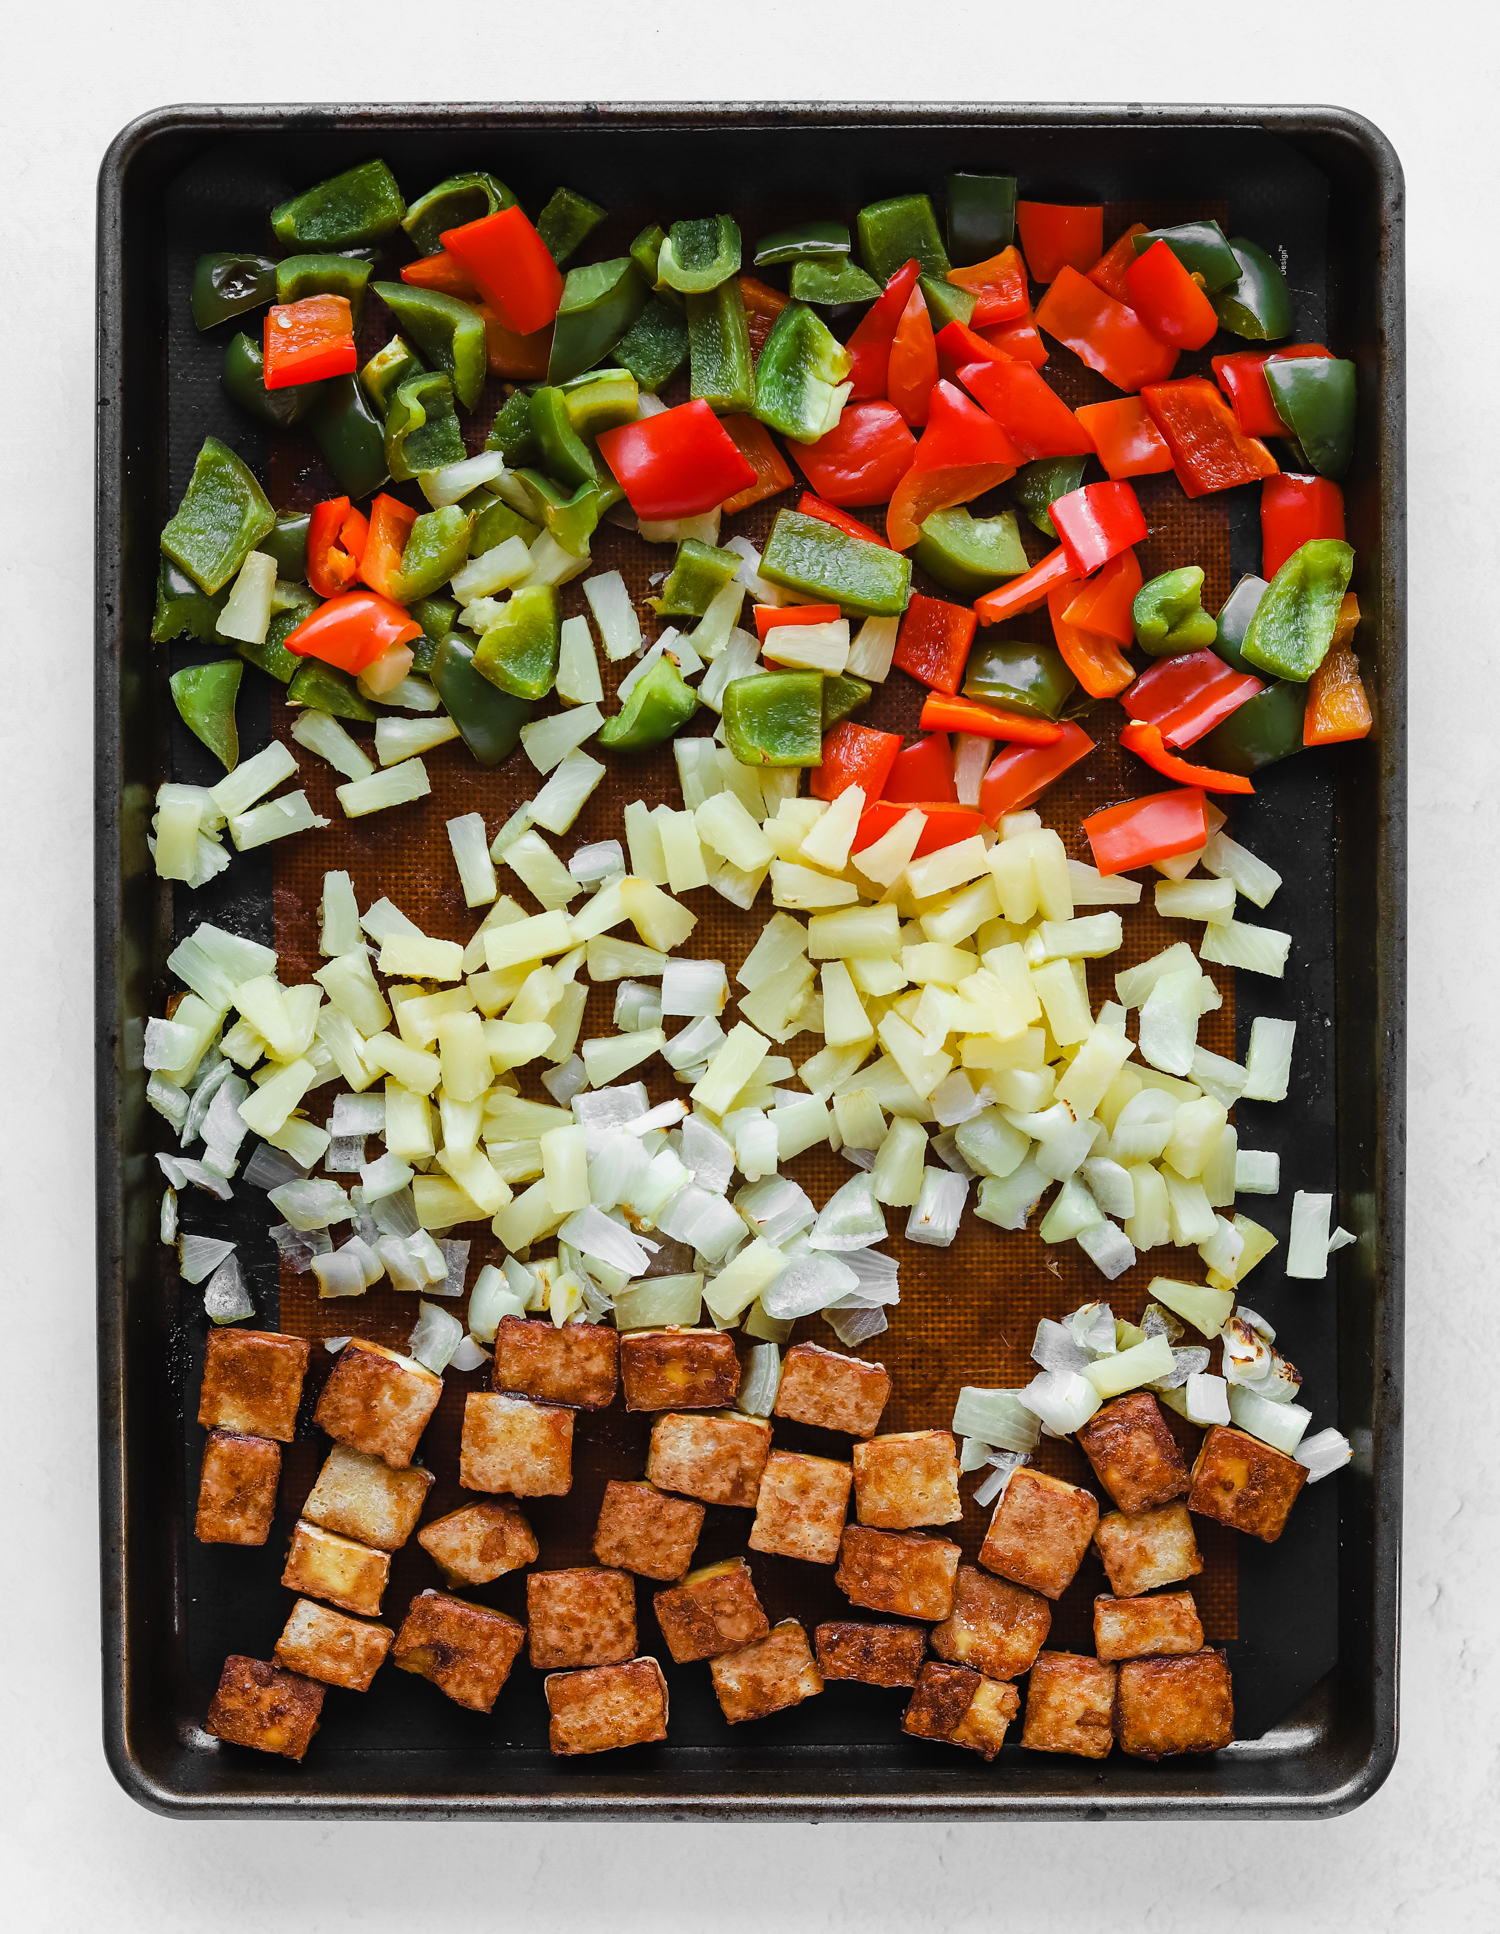 Baked green bell peppers, red bell peppers, diced pineapple, onion, and tofu on a baking sheet.